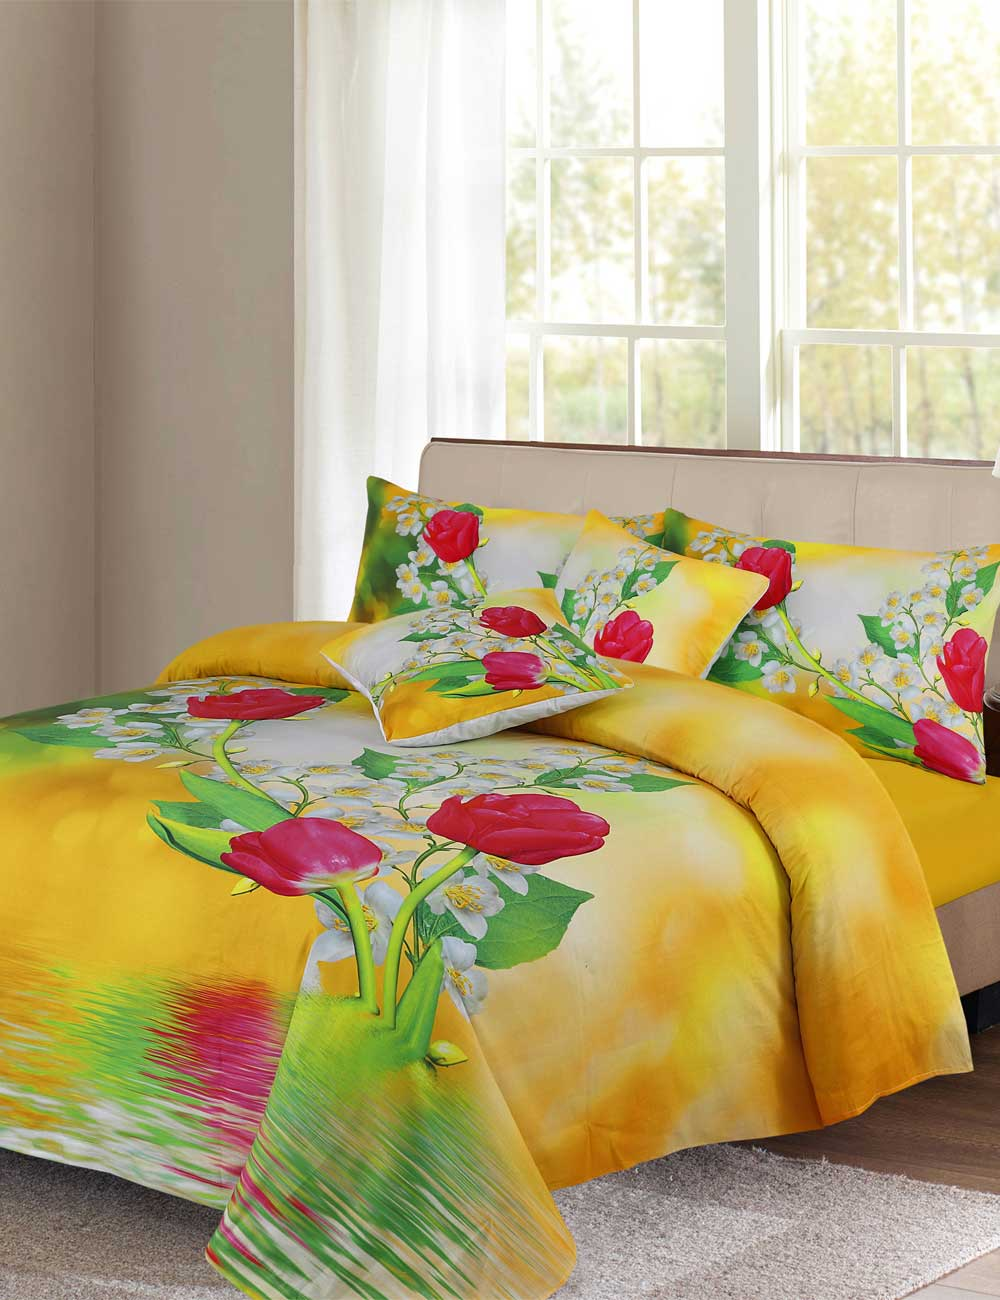 Rose & Tulips Digital Printed 3D Bed Sheet Set